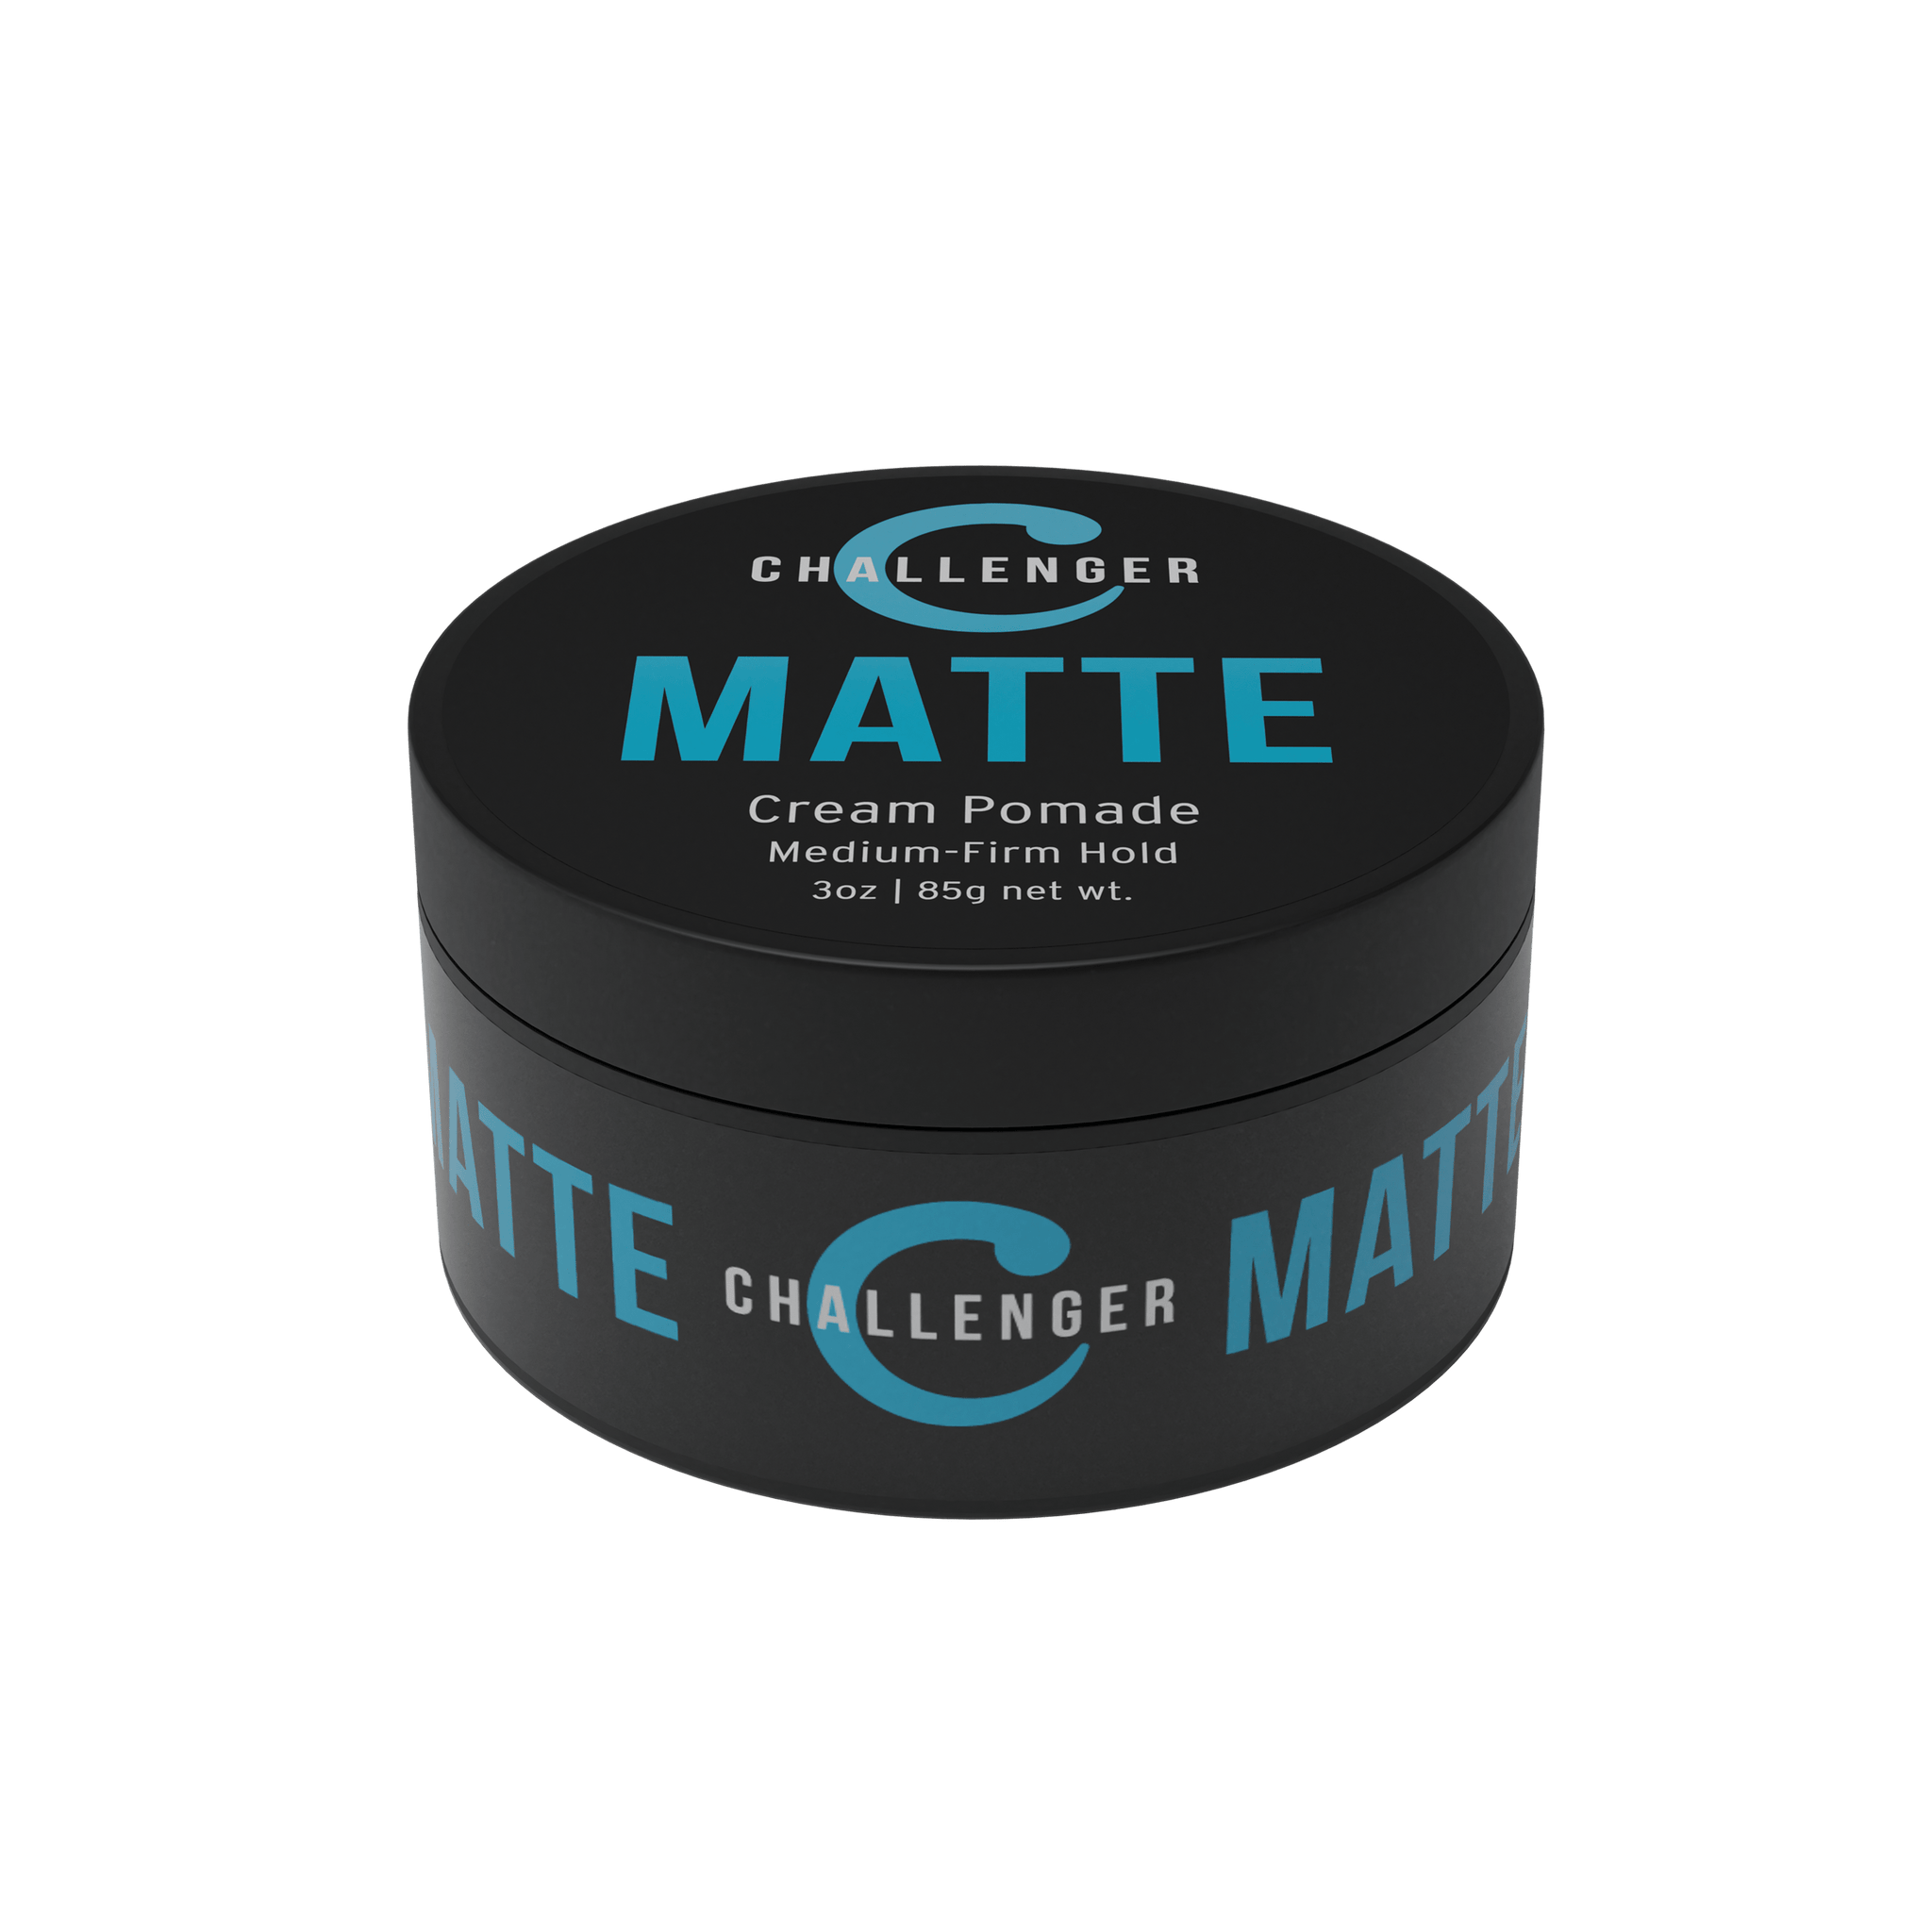 Challenger Men's Matte Cream Pomade, 3 Ounce - CHALLENGER MEN'S CARE